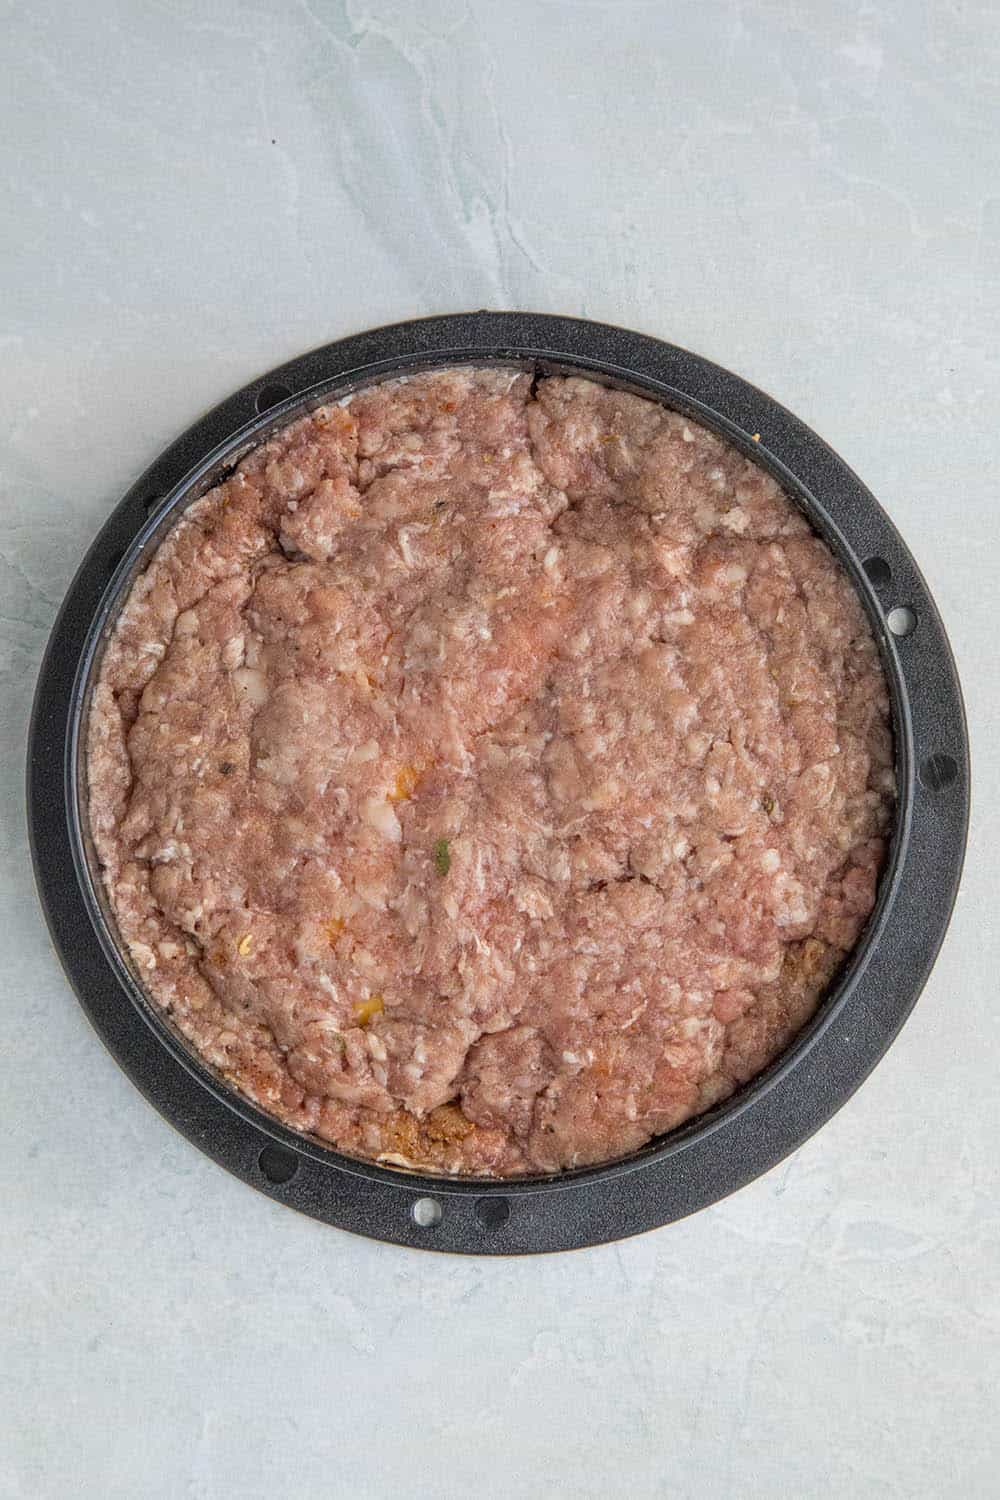 Topping the stuffed burgers with extra ground beef to enclose the cheese